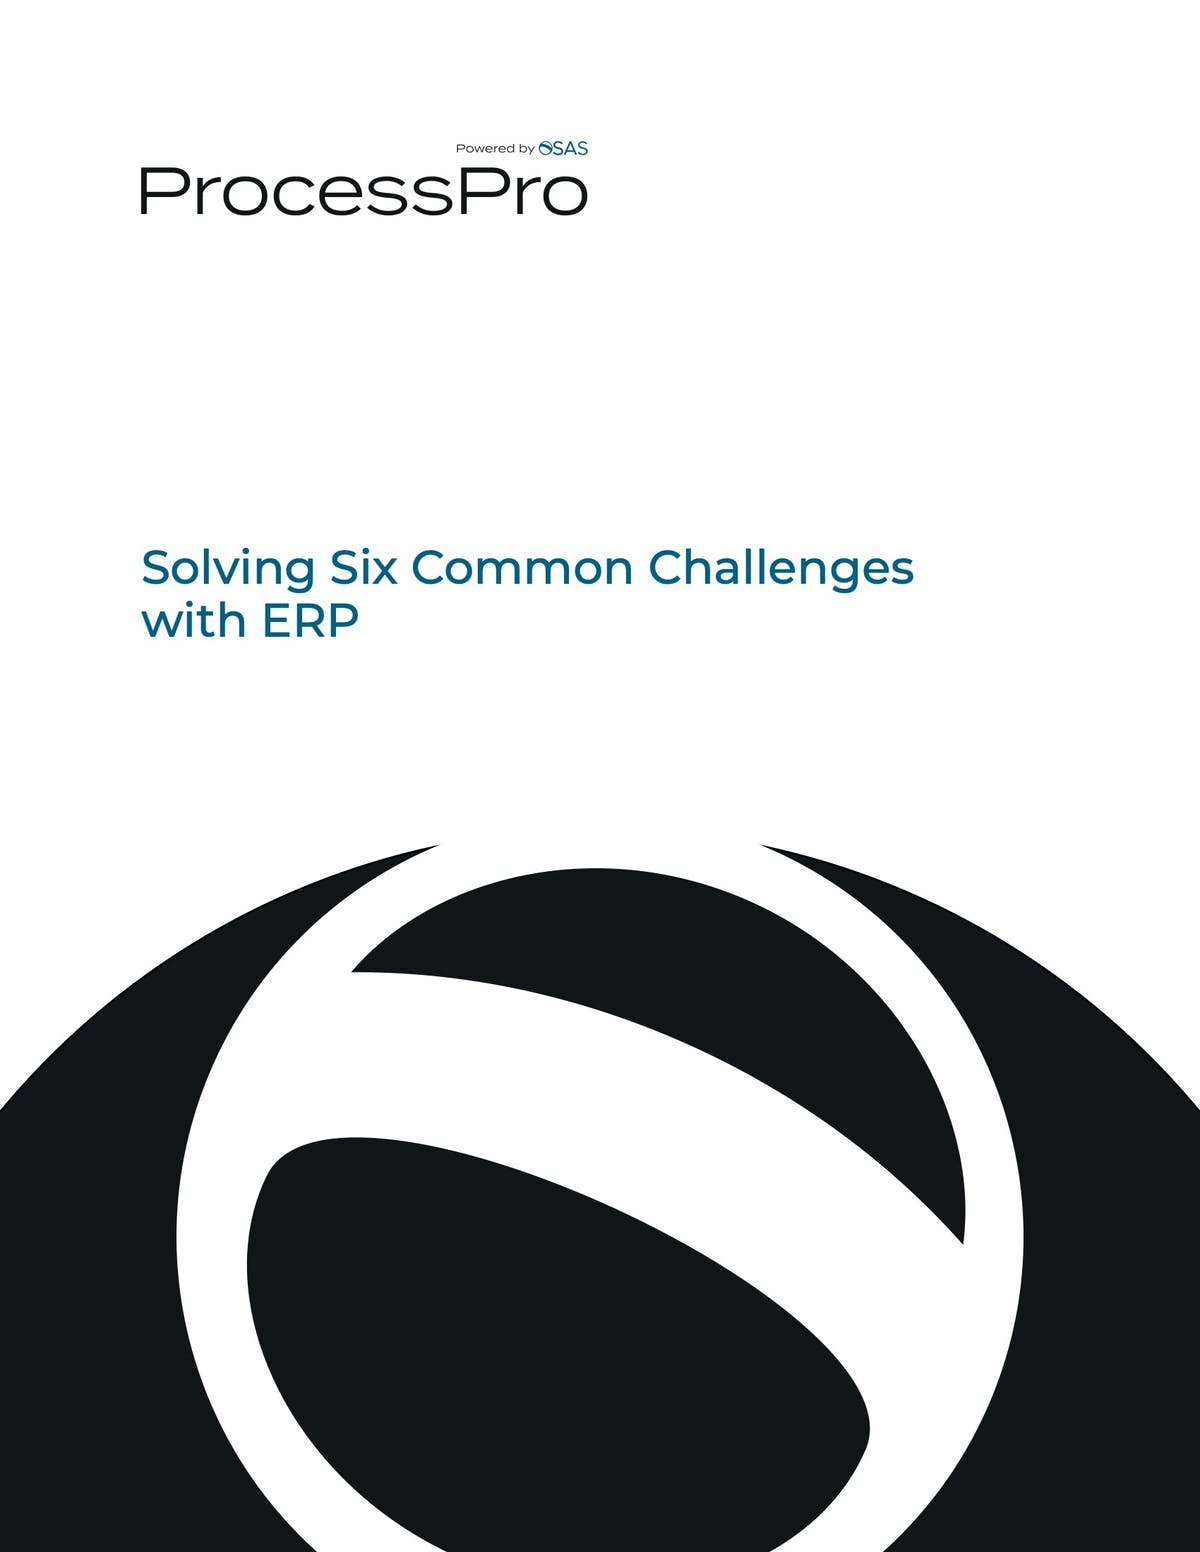 ProcessPro White Paper - Solving Six Common Challenges with ERP